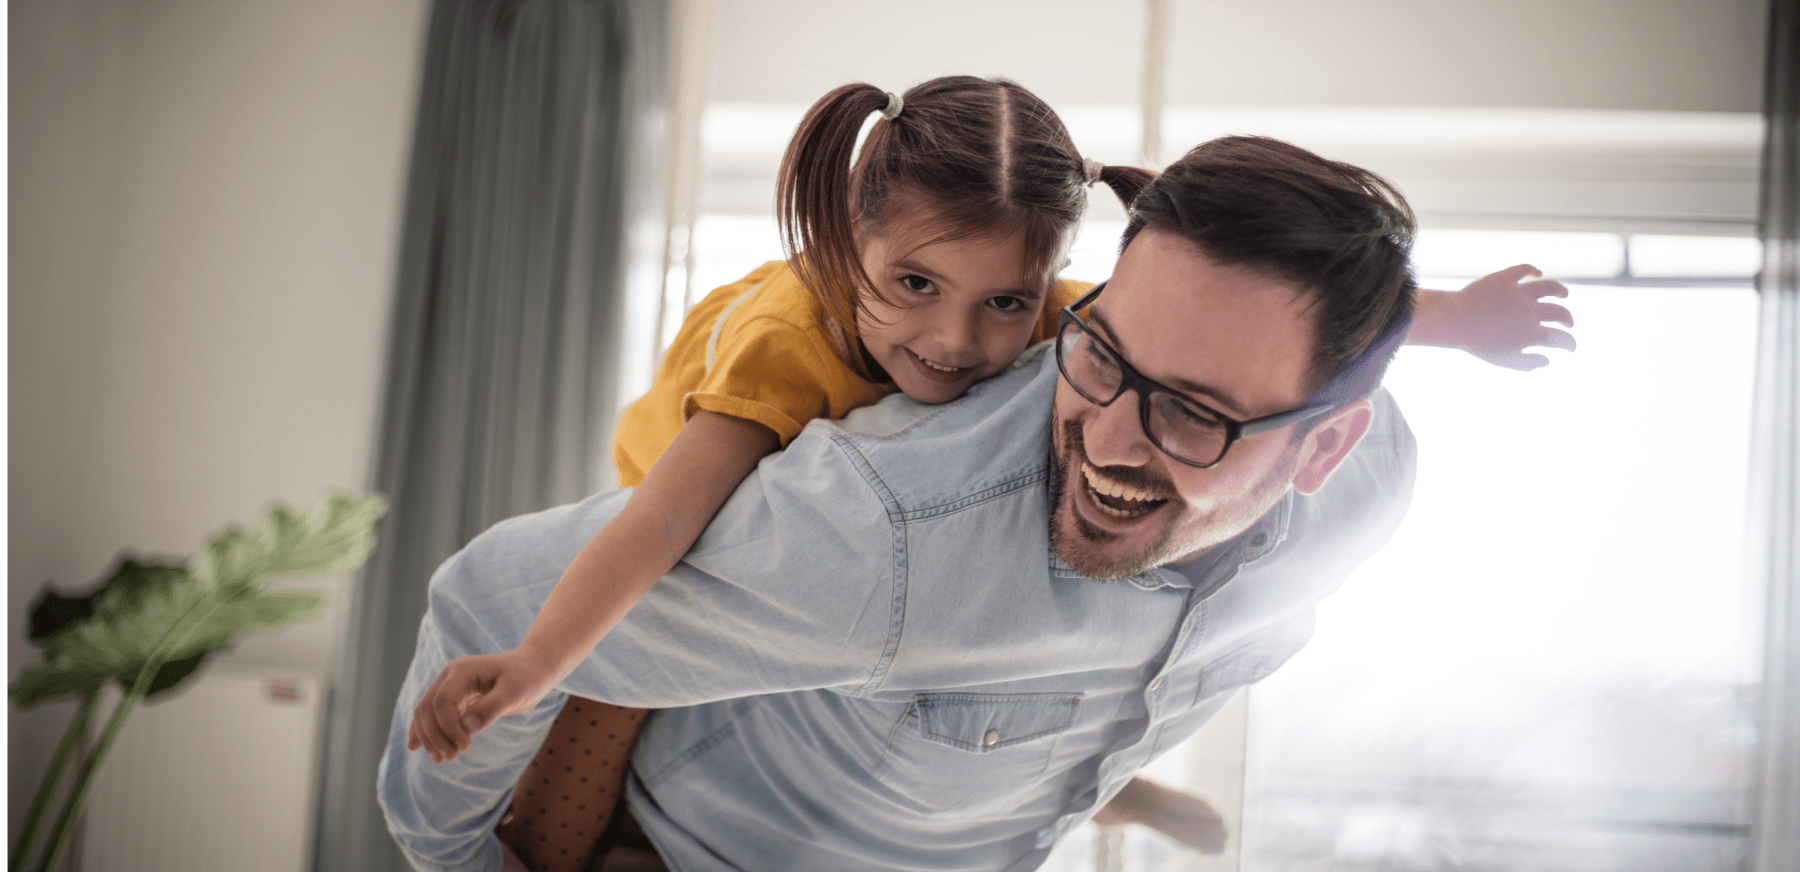 With all the addons, benefits, exclusions and terms, it's easy to get life insurance wrong. Here's our expert advice to get it right!